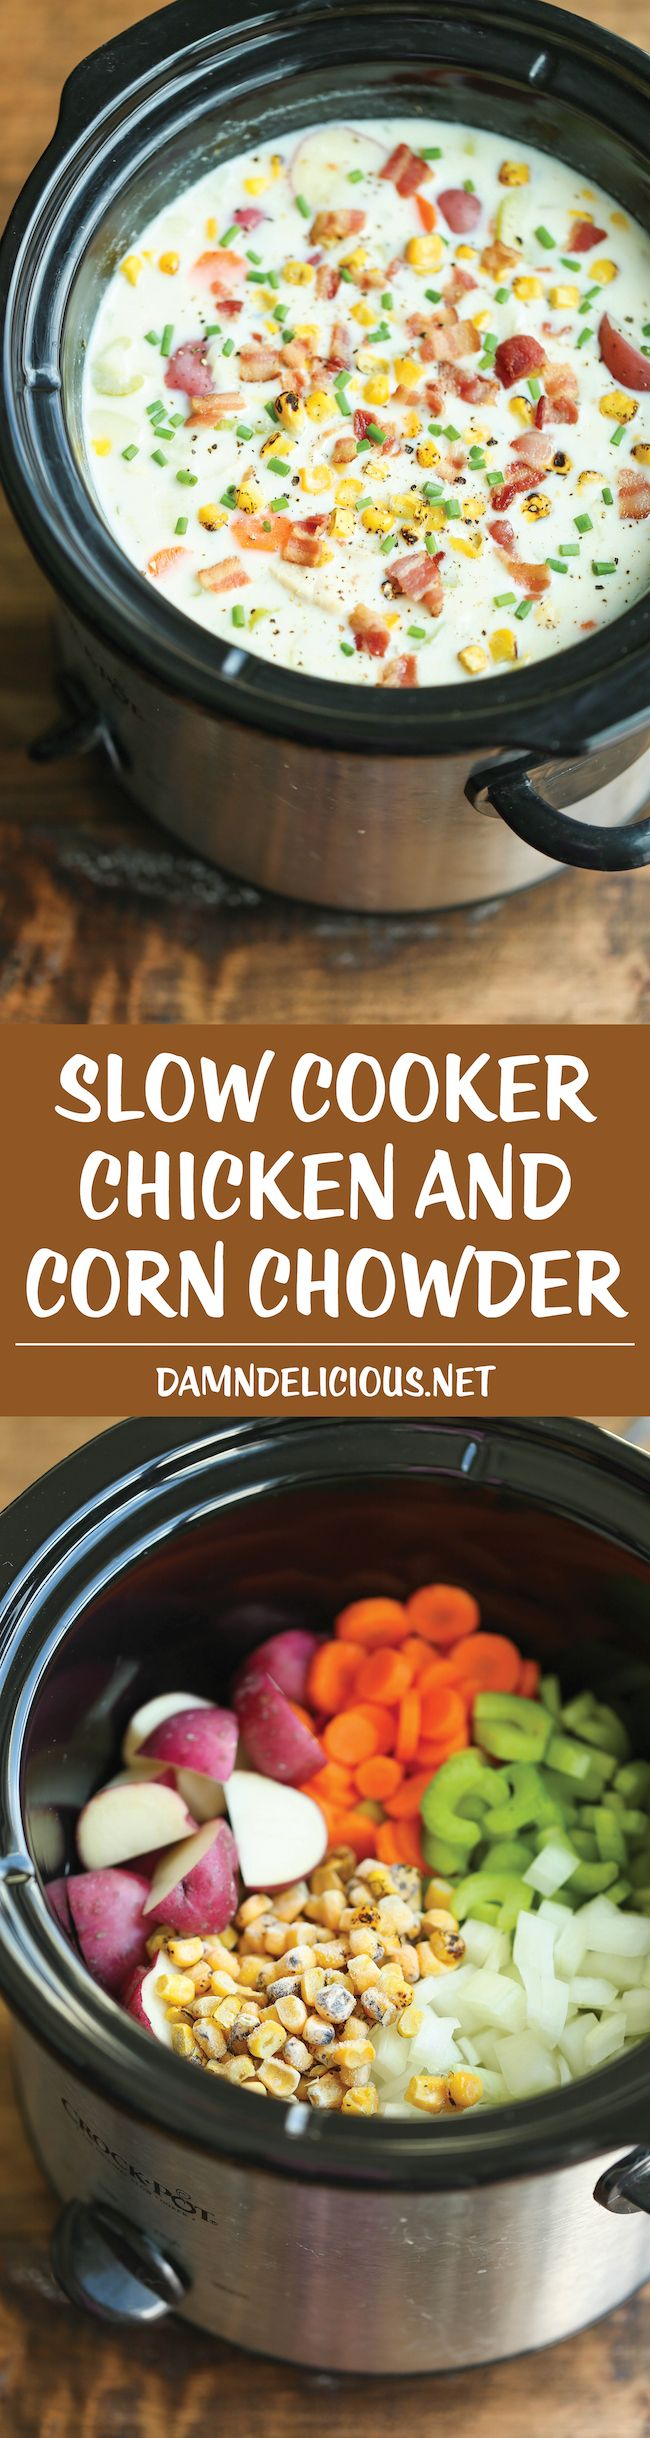 Slow Cooker Chicken and Corn Chowder - Such a hearty, comforting and CREAMY soup, made right in the crock pot. Let it do all the work for you! EASY!